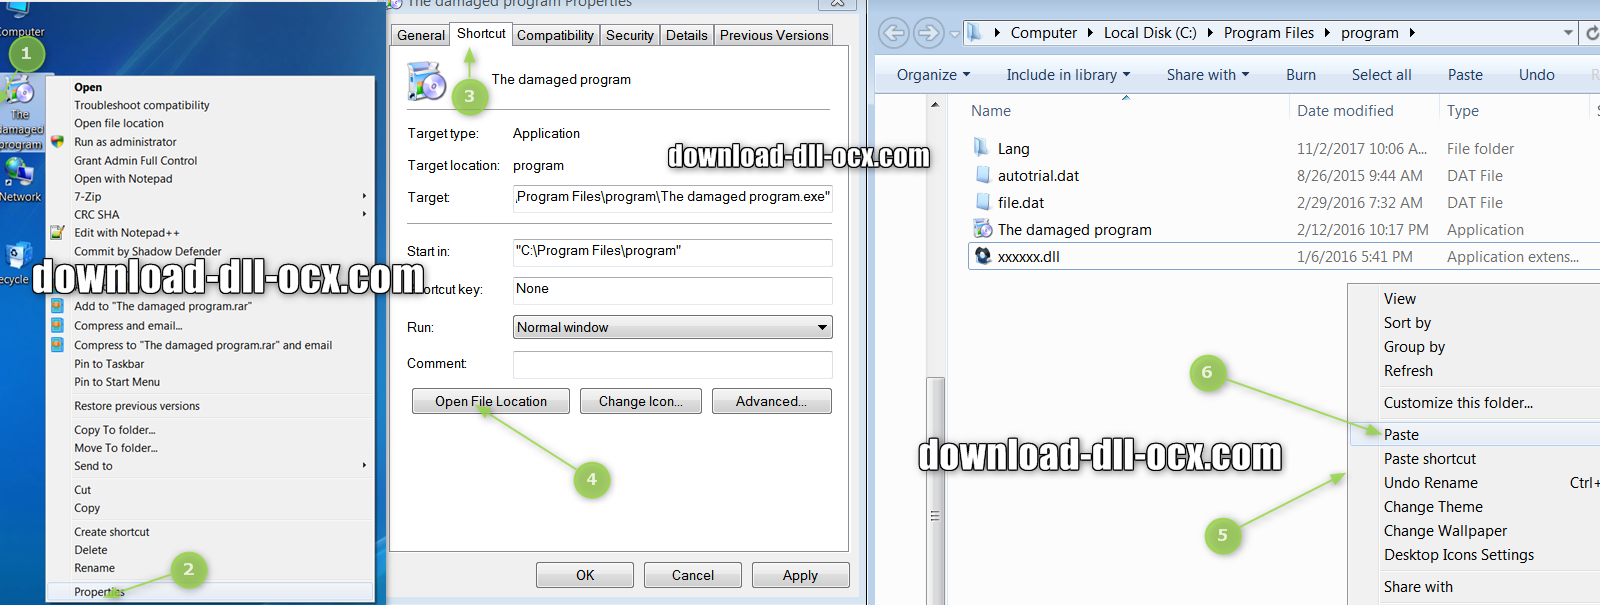 how to install Ippromon.dll file? for fix missing